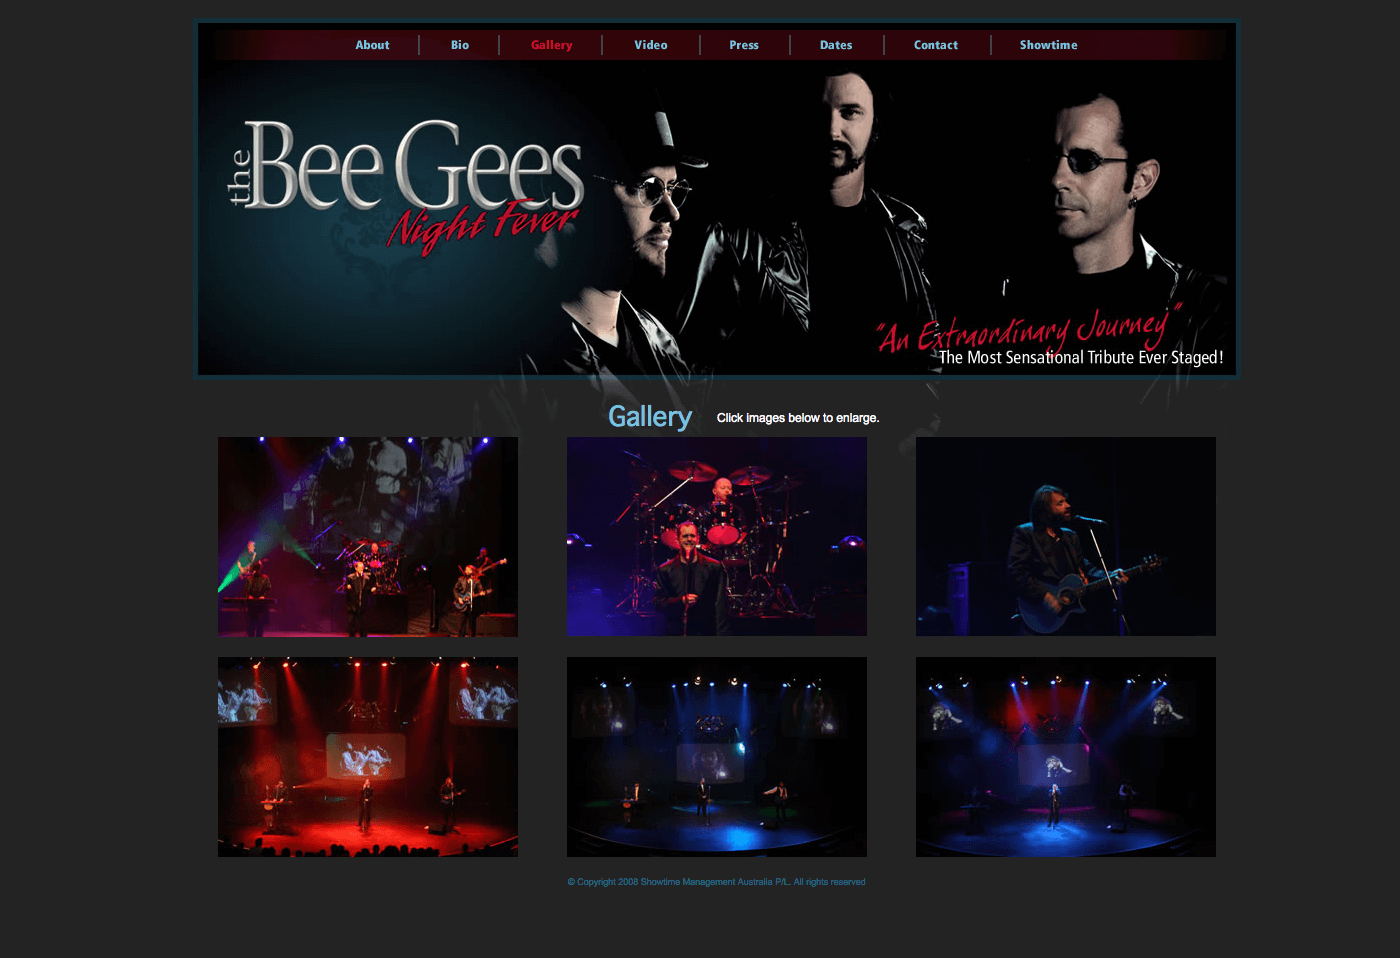 Able Video The Bees Gees – Night Fever Website 02